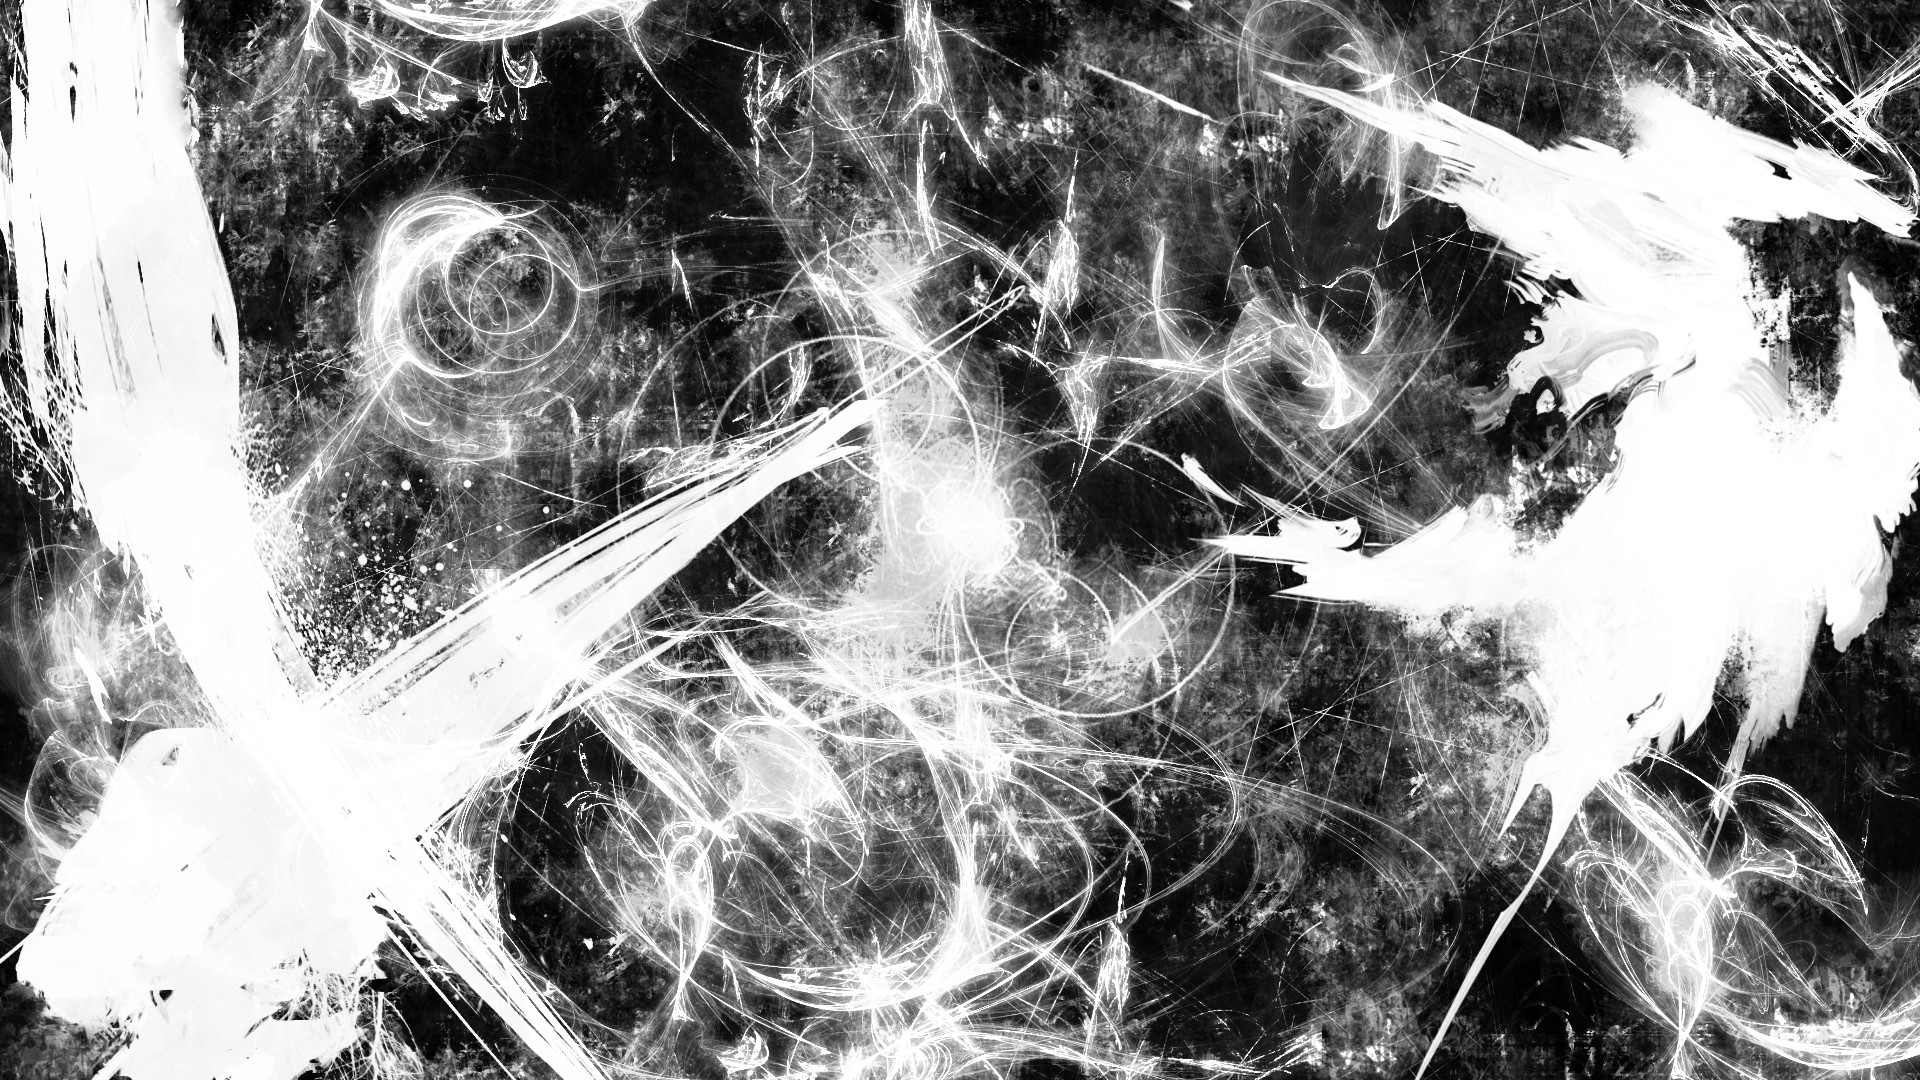 Res: 1920x1080, Black And White Abstract Drawings